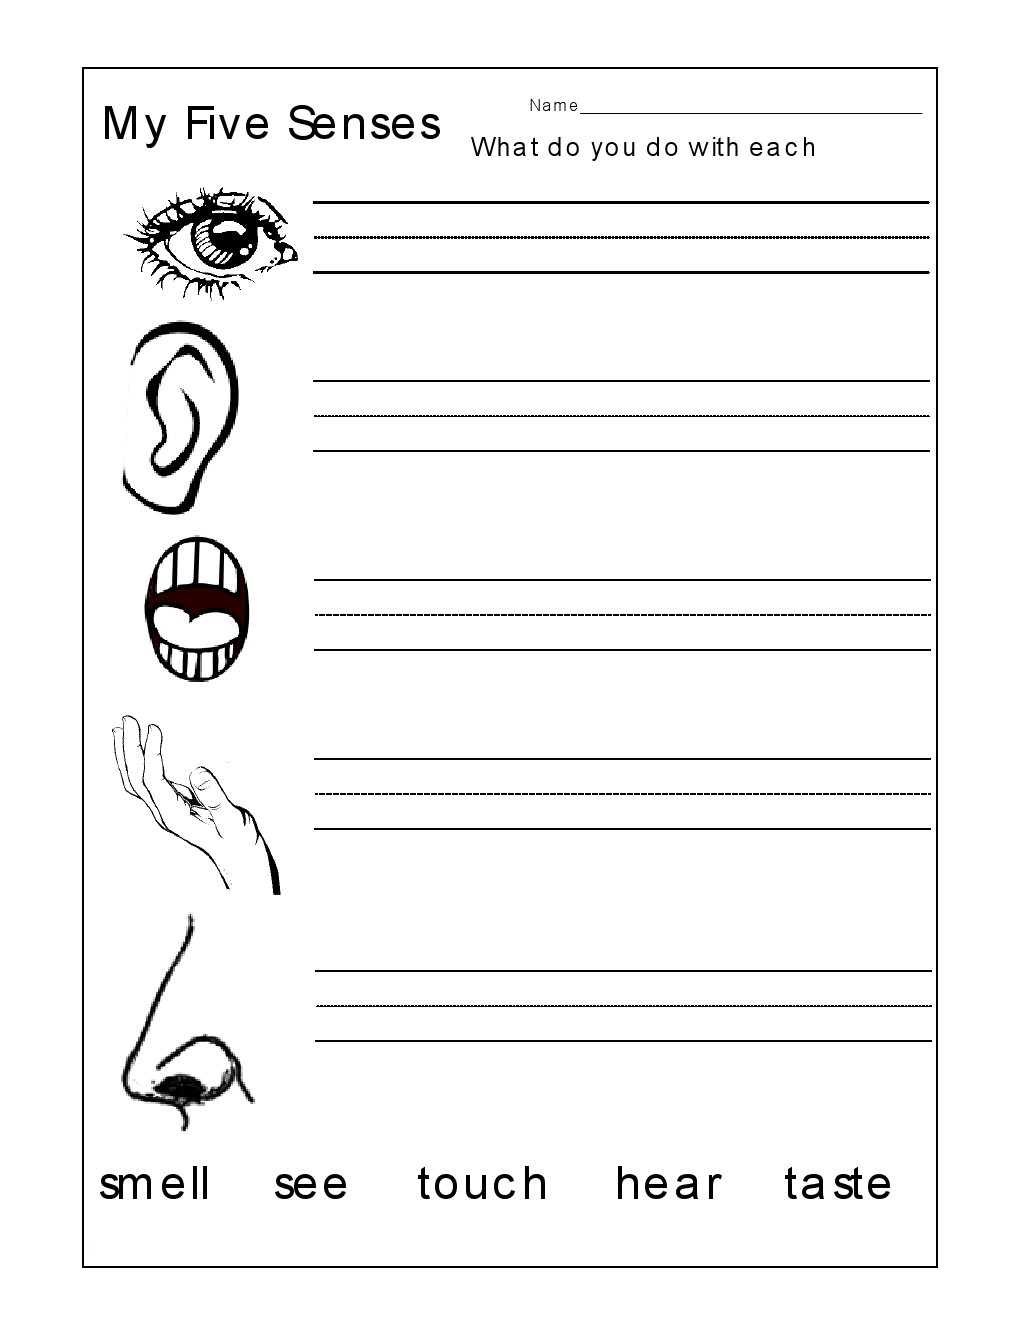 worksheet Taste And Smell Worksheet kindergarten worksheets january 2016 the 5 senses worksheets